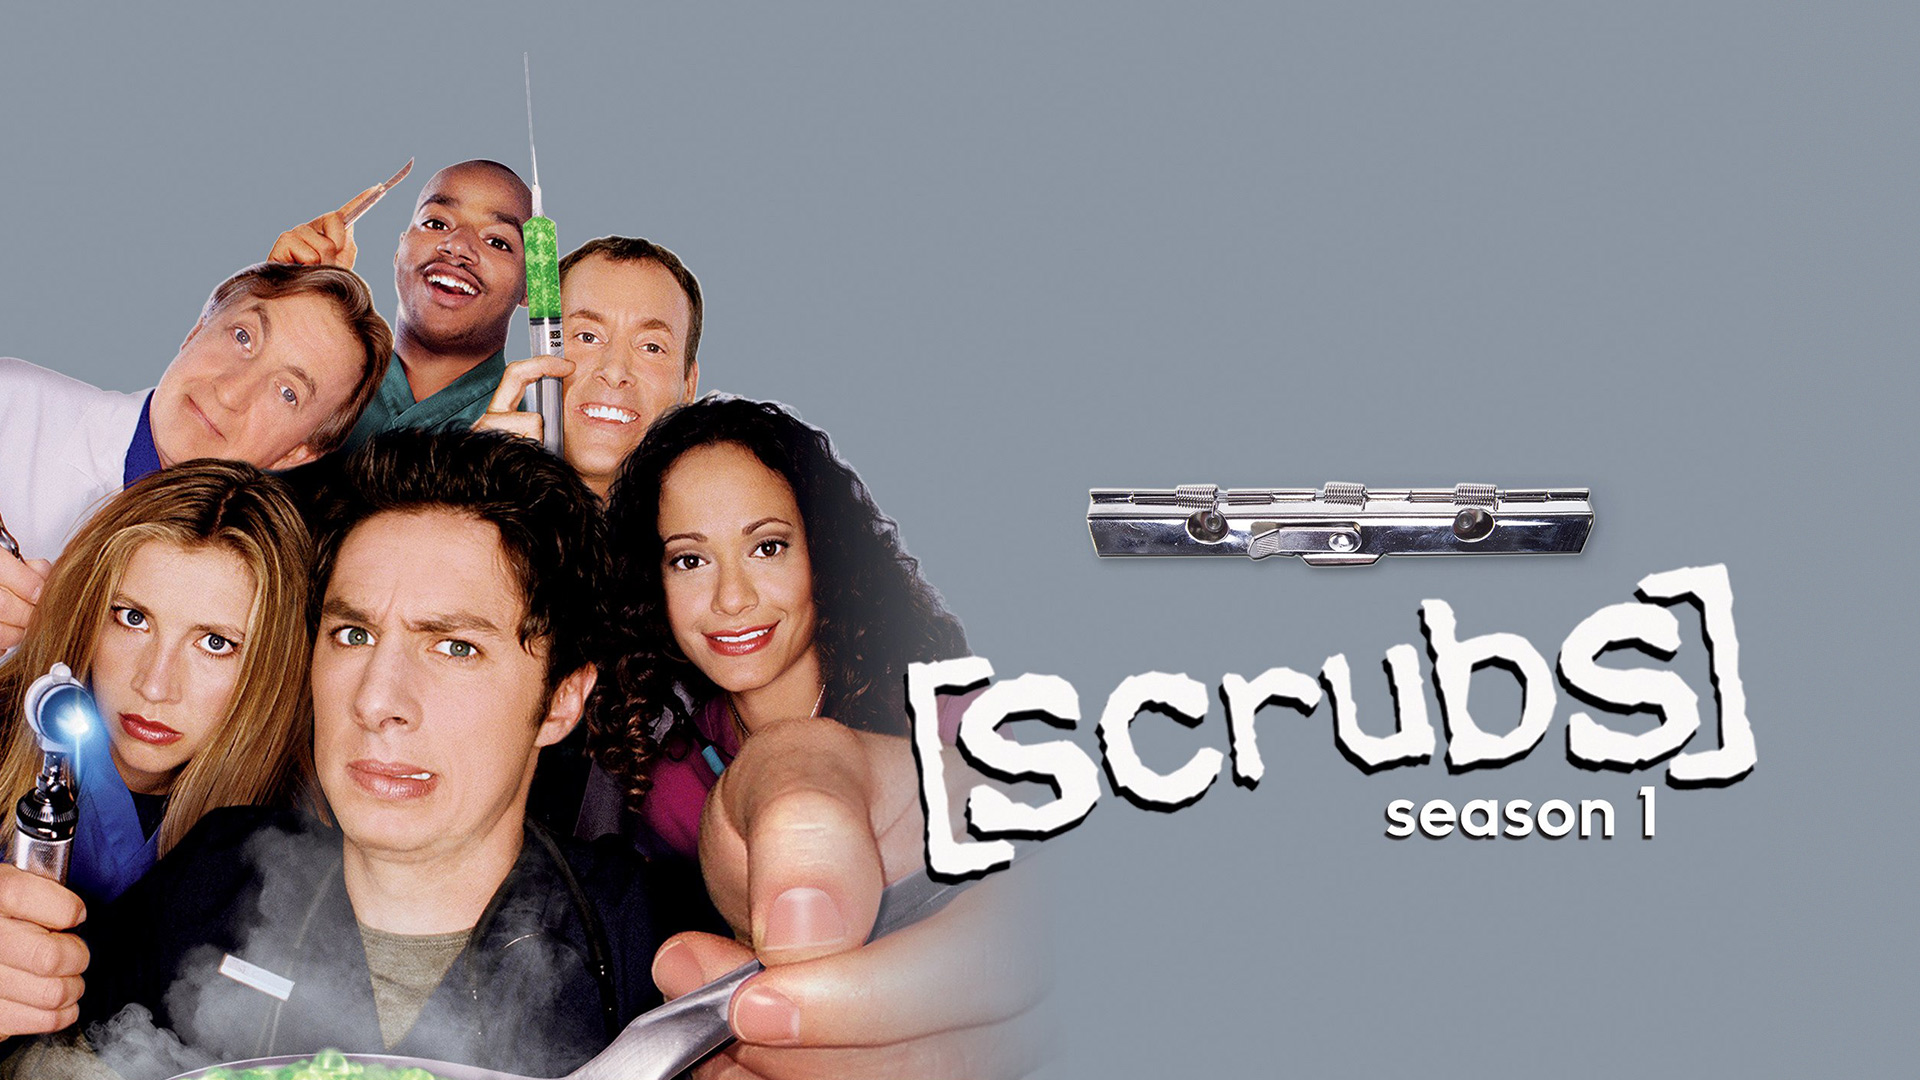 Scrubs Season 1